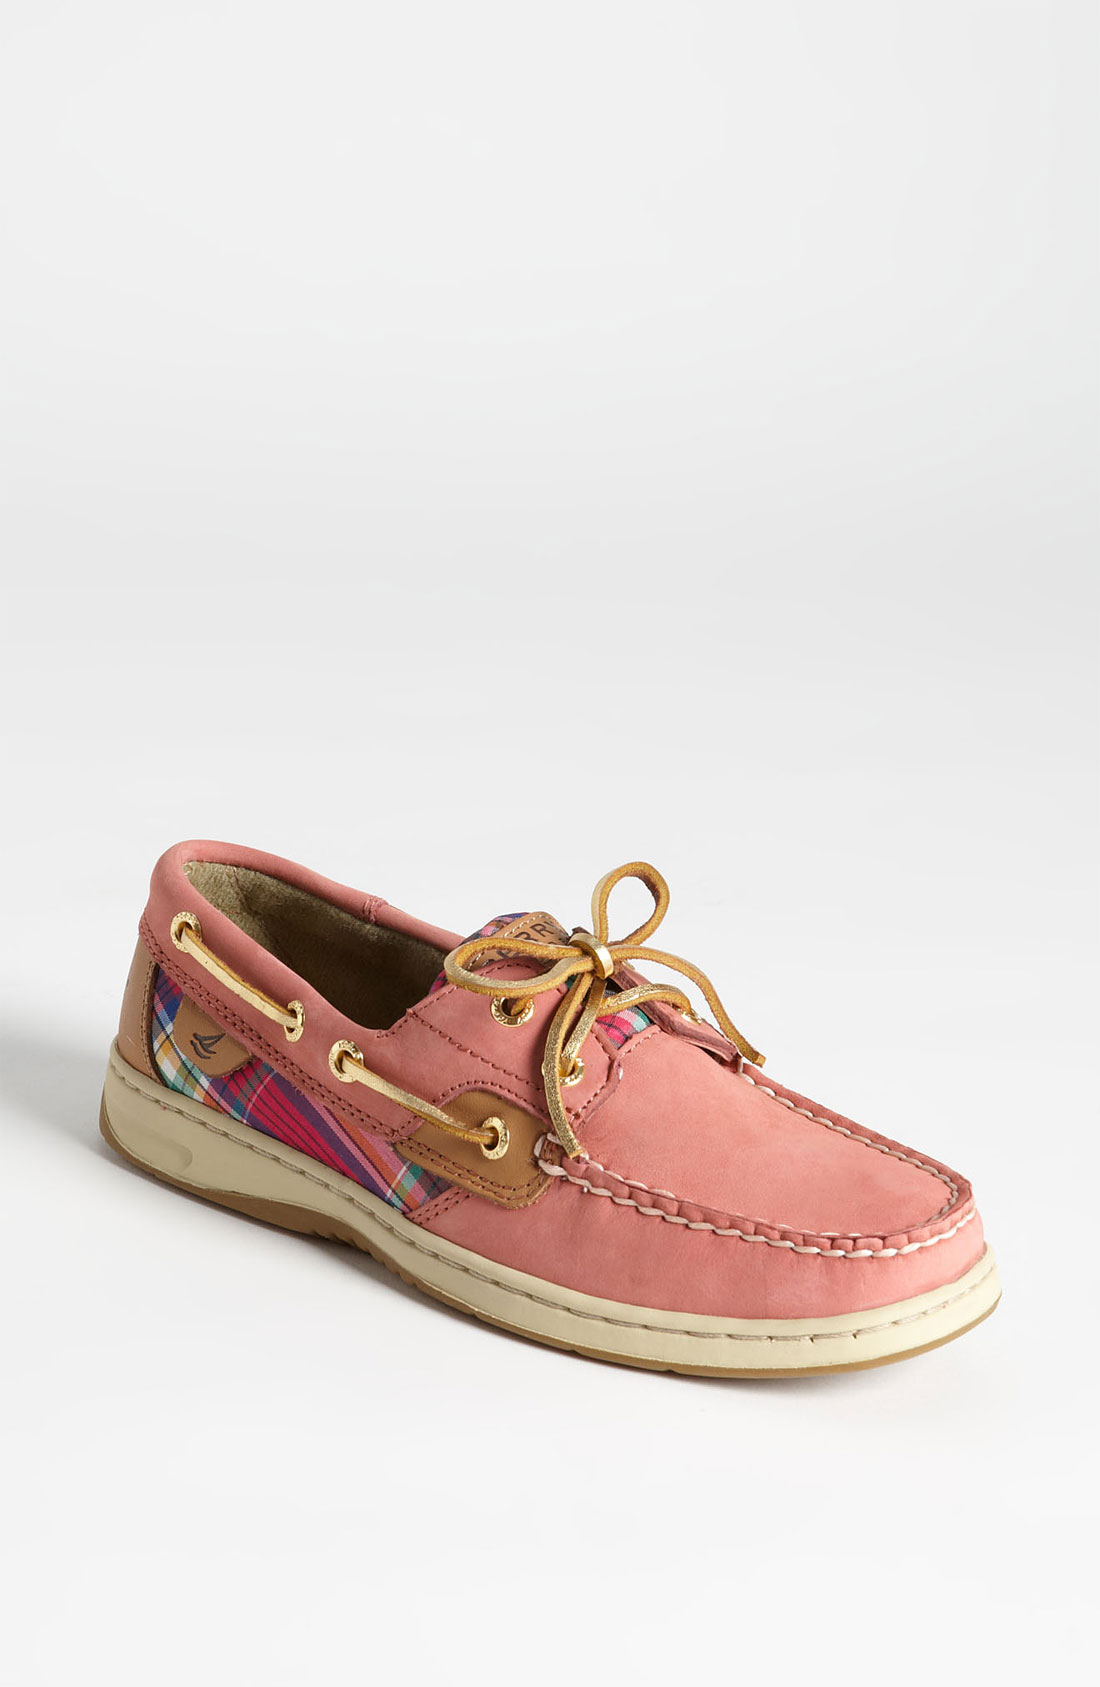 Sperry Top-sider Bluefish 2eye Boat Shoe Women in Pink (wash red plaid